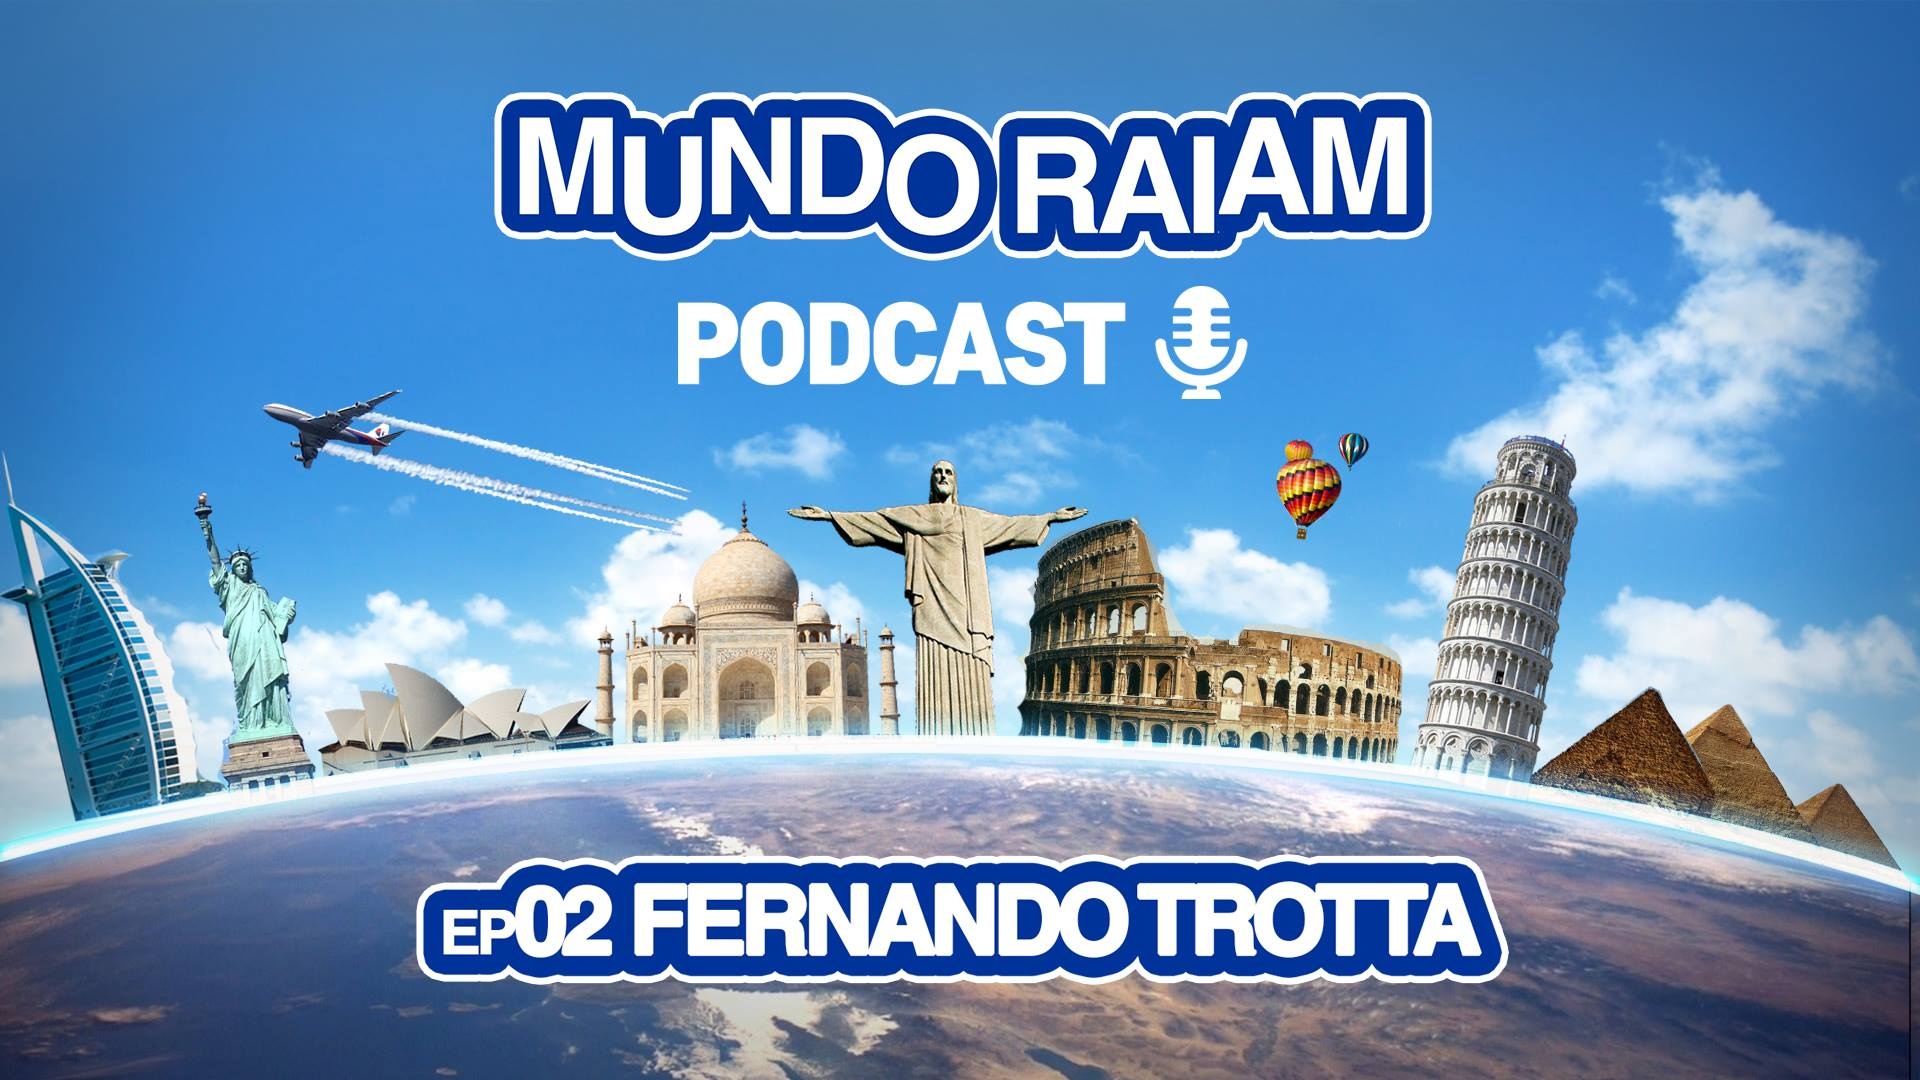 fernando trotta raiam santos podcast mundoraiam